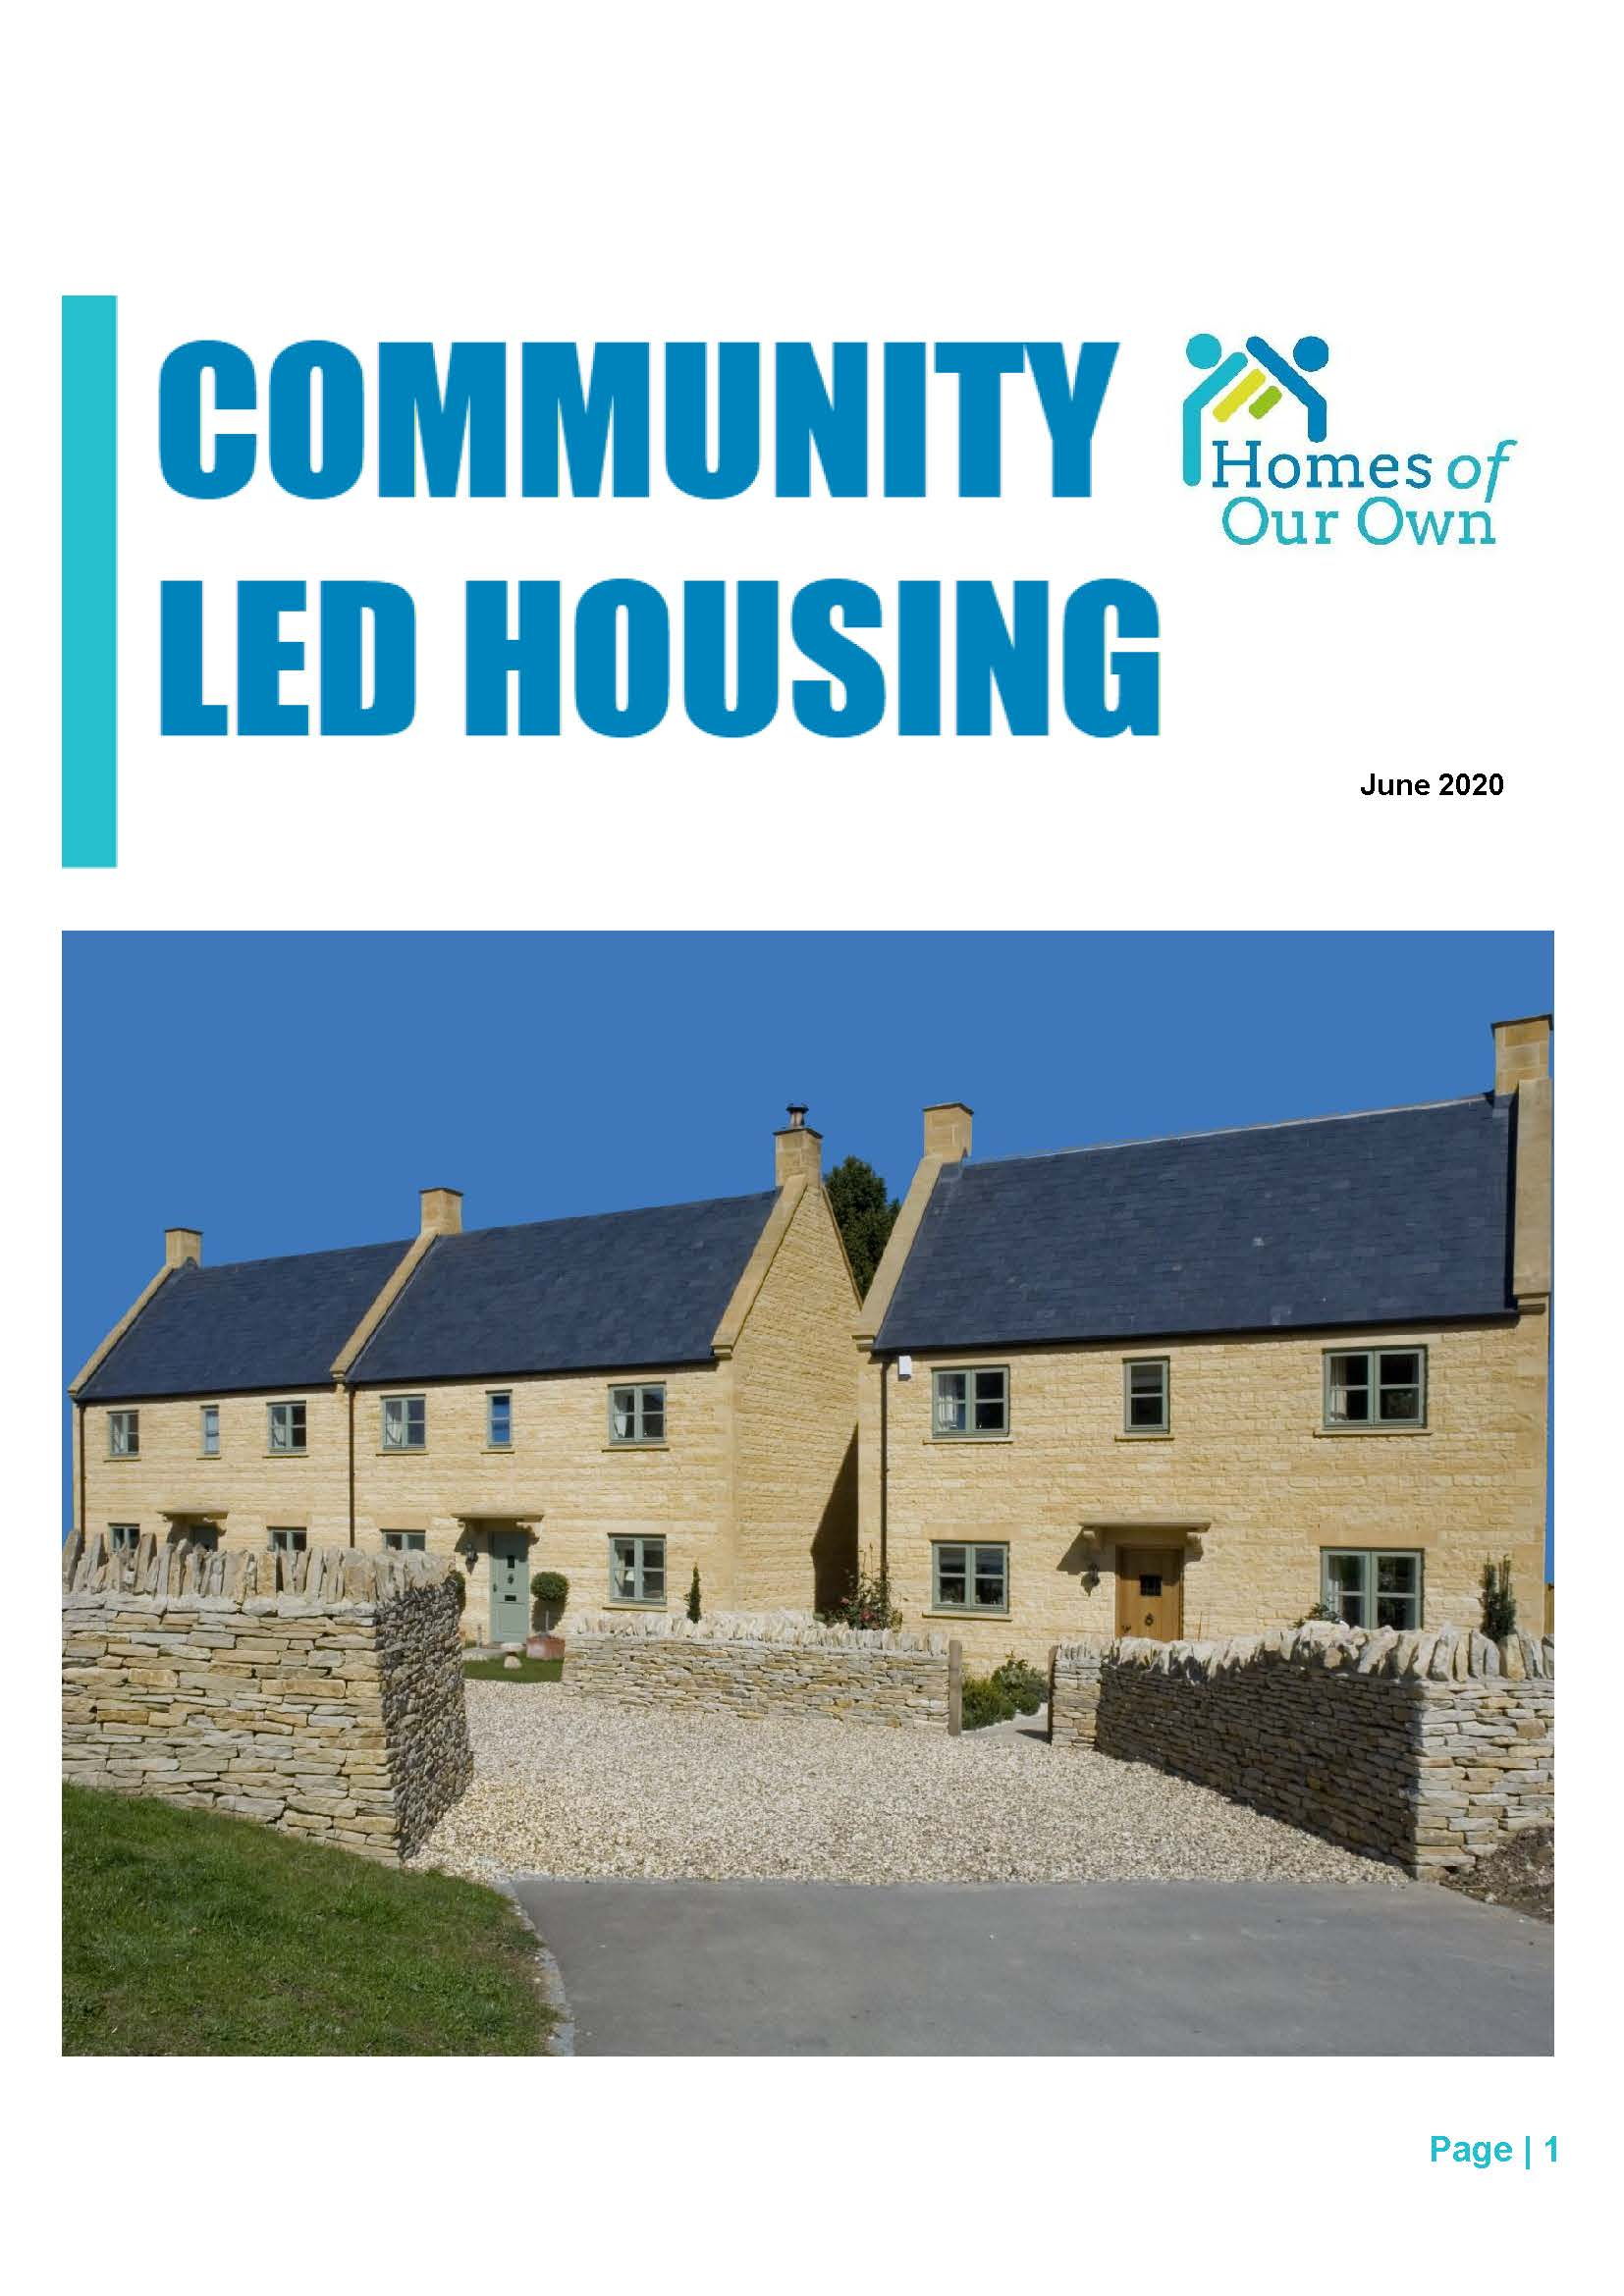 Homes of Our Own Q2 2020 Newsletter